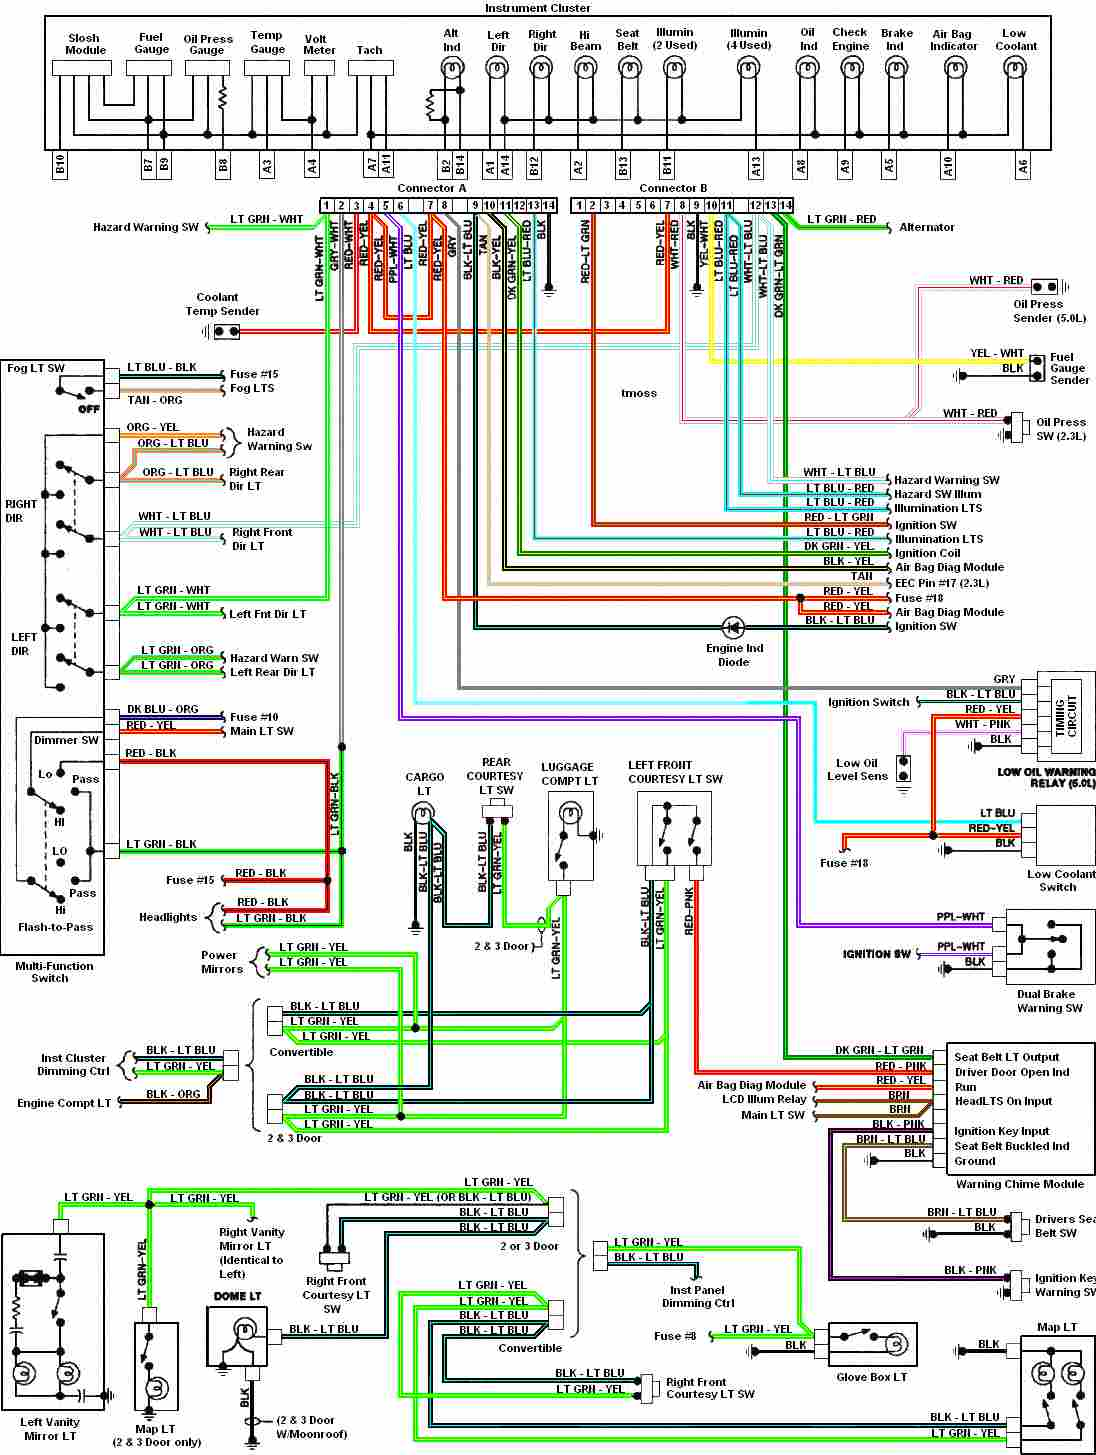 1428517 Ecu Pin Out Termination Locations also Index9 besides Turn Signal Flasher Kit Wiring Diagrams as well Simple Electronics Circuit also Discussion T27959 ds709108. on door switch wire diagram relays